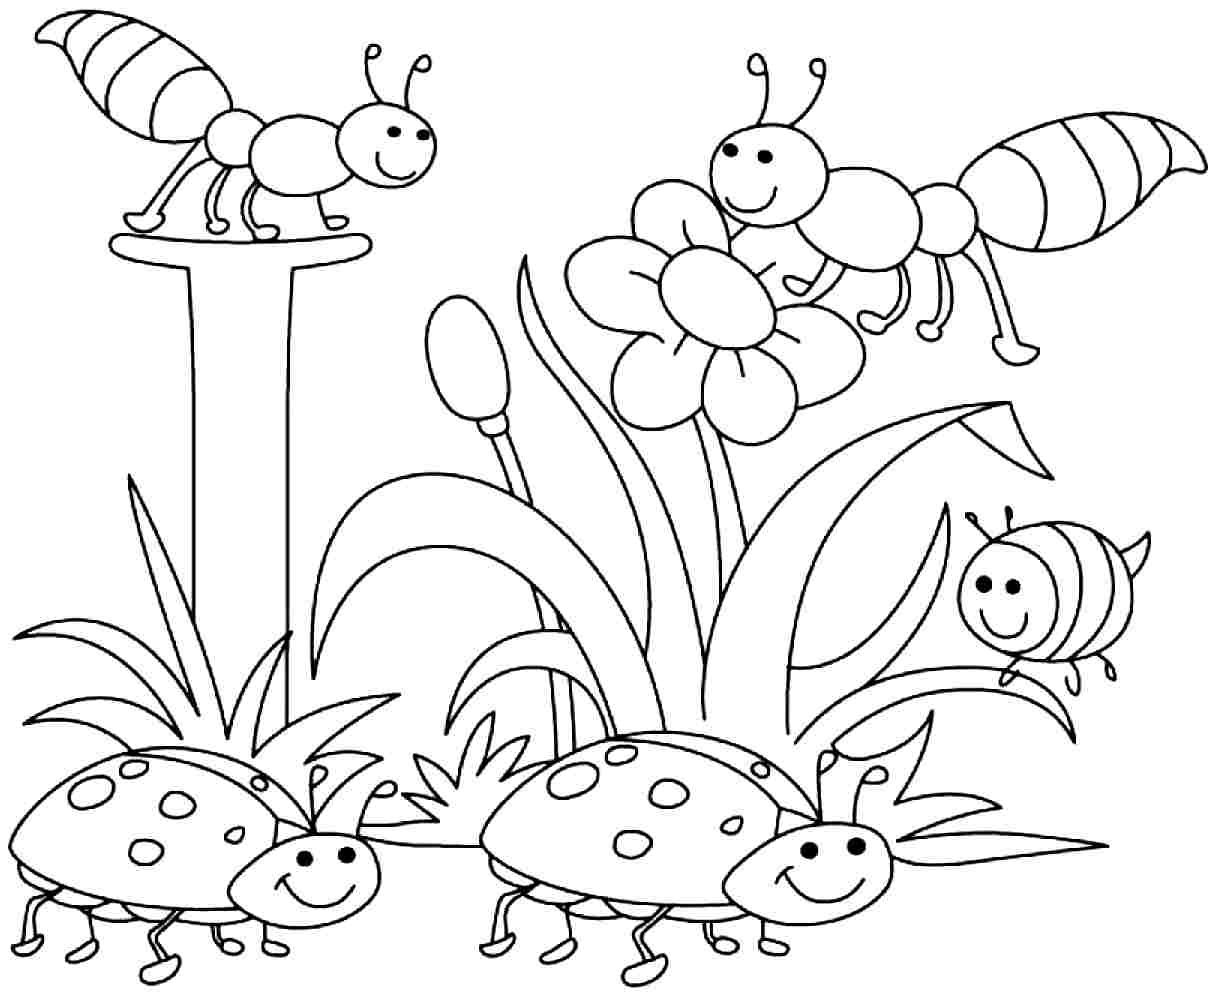 Printable Spring Coloring Pages Buscar Con Google Summer Coloring Pages Easy Coloring Pages Spring Coloring Sheets